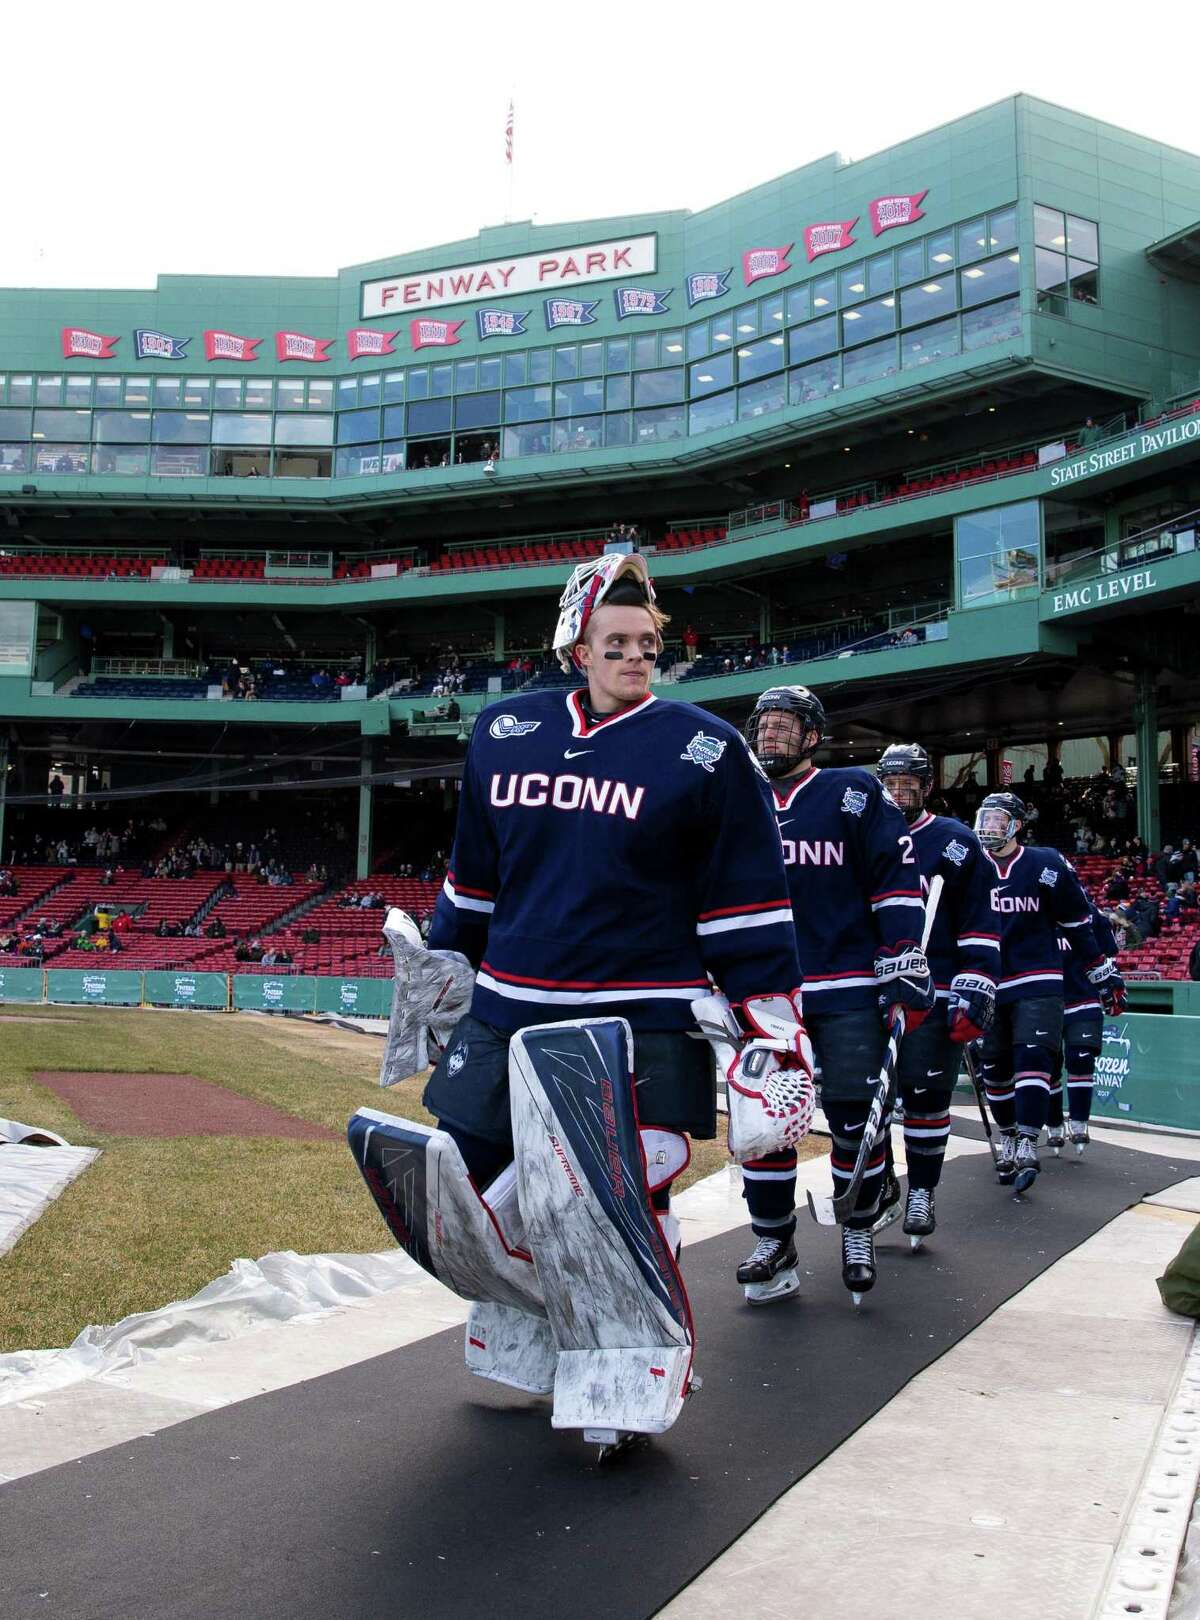 """BOSTON, MA - JANUARY 14: Tanner Creel #1 of the Connecticut Huskies walks towards the ice surface during an NCAA hockey game against the Maine Black Bears at Fenway Park during """"Frozen Fenway"""" on January 14, 2017 in Boston, Massachusetts. The Black Bears won 4-0. (Photo by Richard T Gagnon/Getty Images)"""